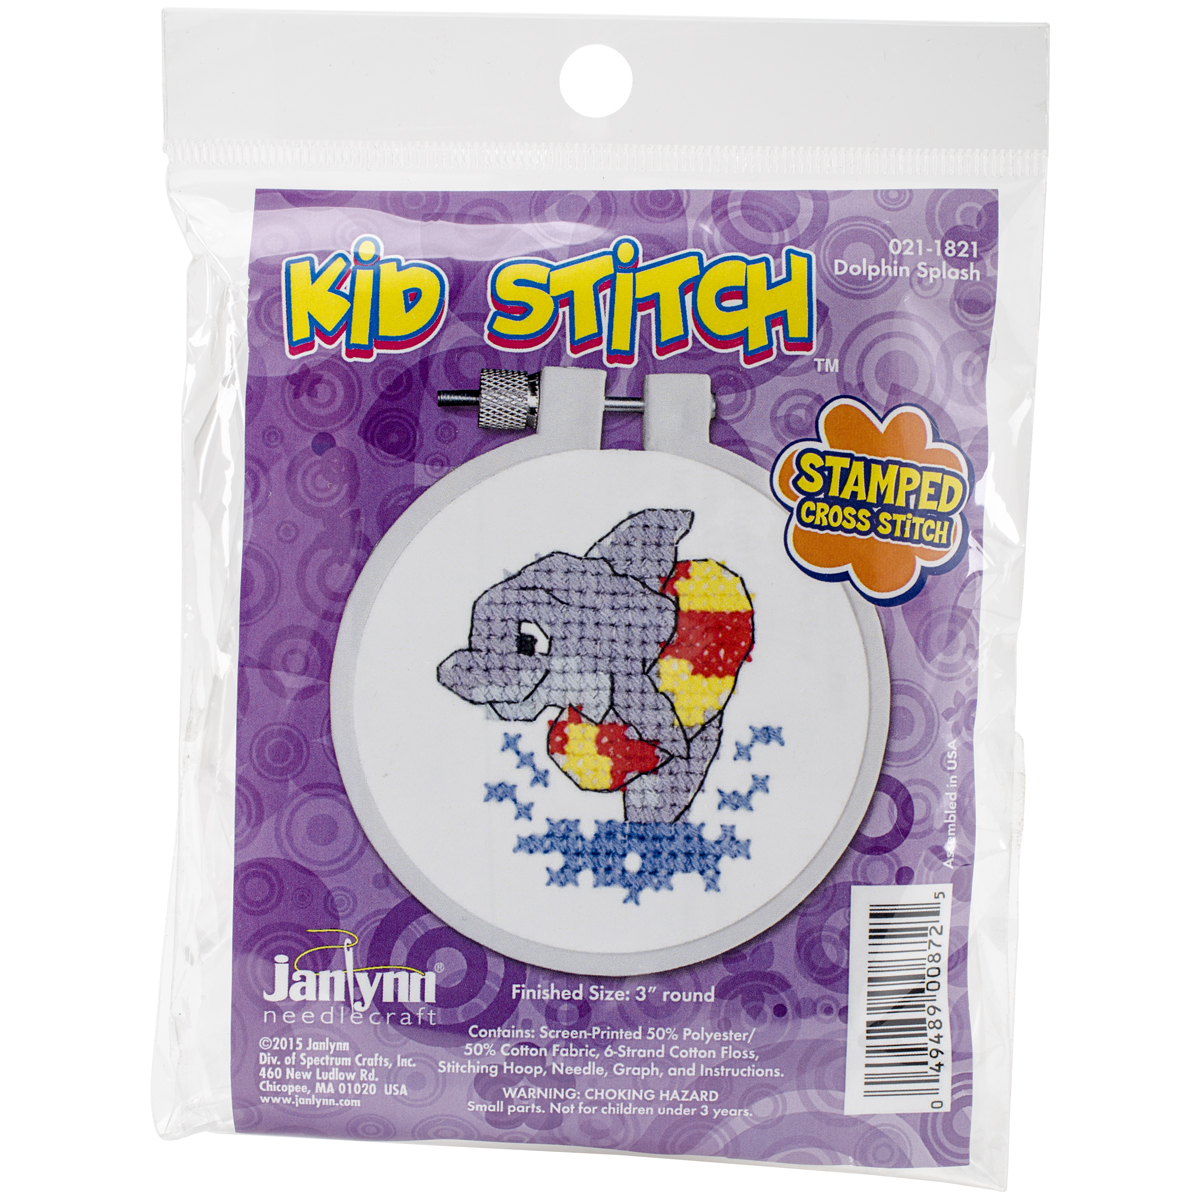 "Kid Stitch Dolphin Splash Stamped Cross Stitch Kit, 3"" Round"